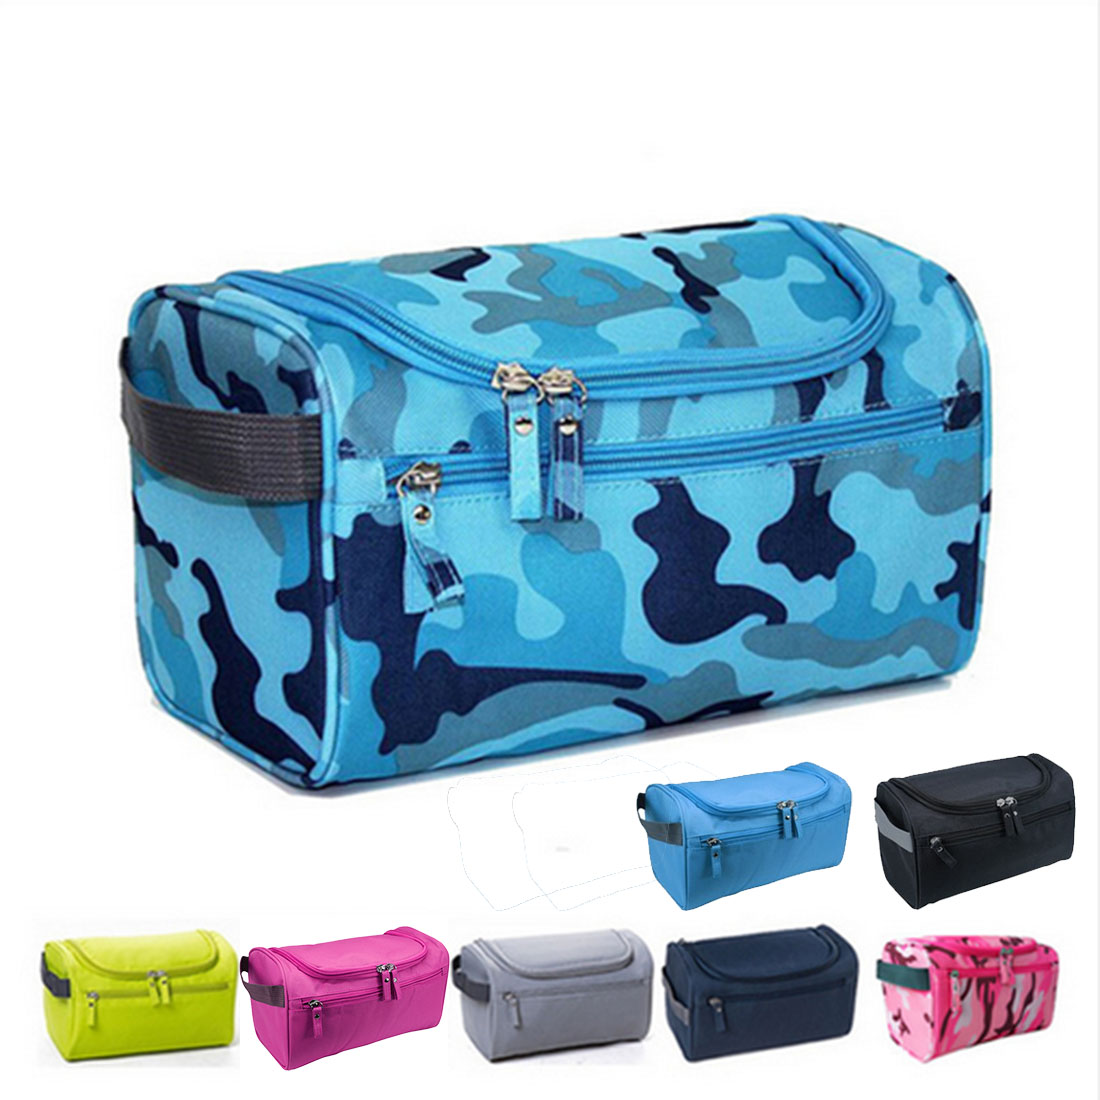 Waterproof Travel Toiletry Bag Hanging Travel Toiletry Bag Cosmetic Make Up Organizer Portable Outdoor Case Bag